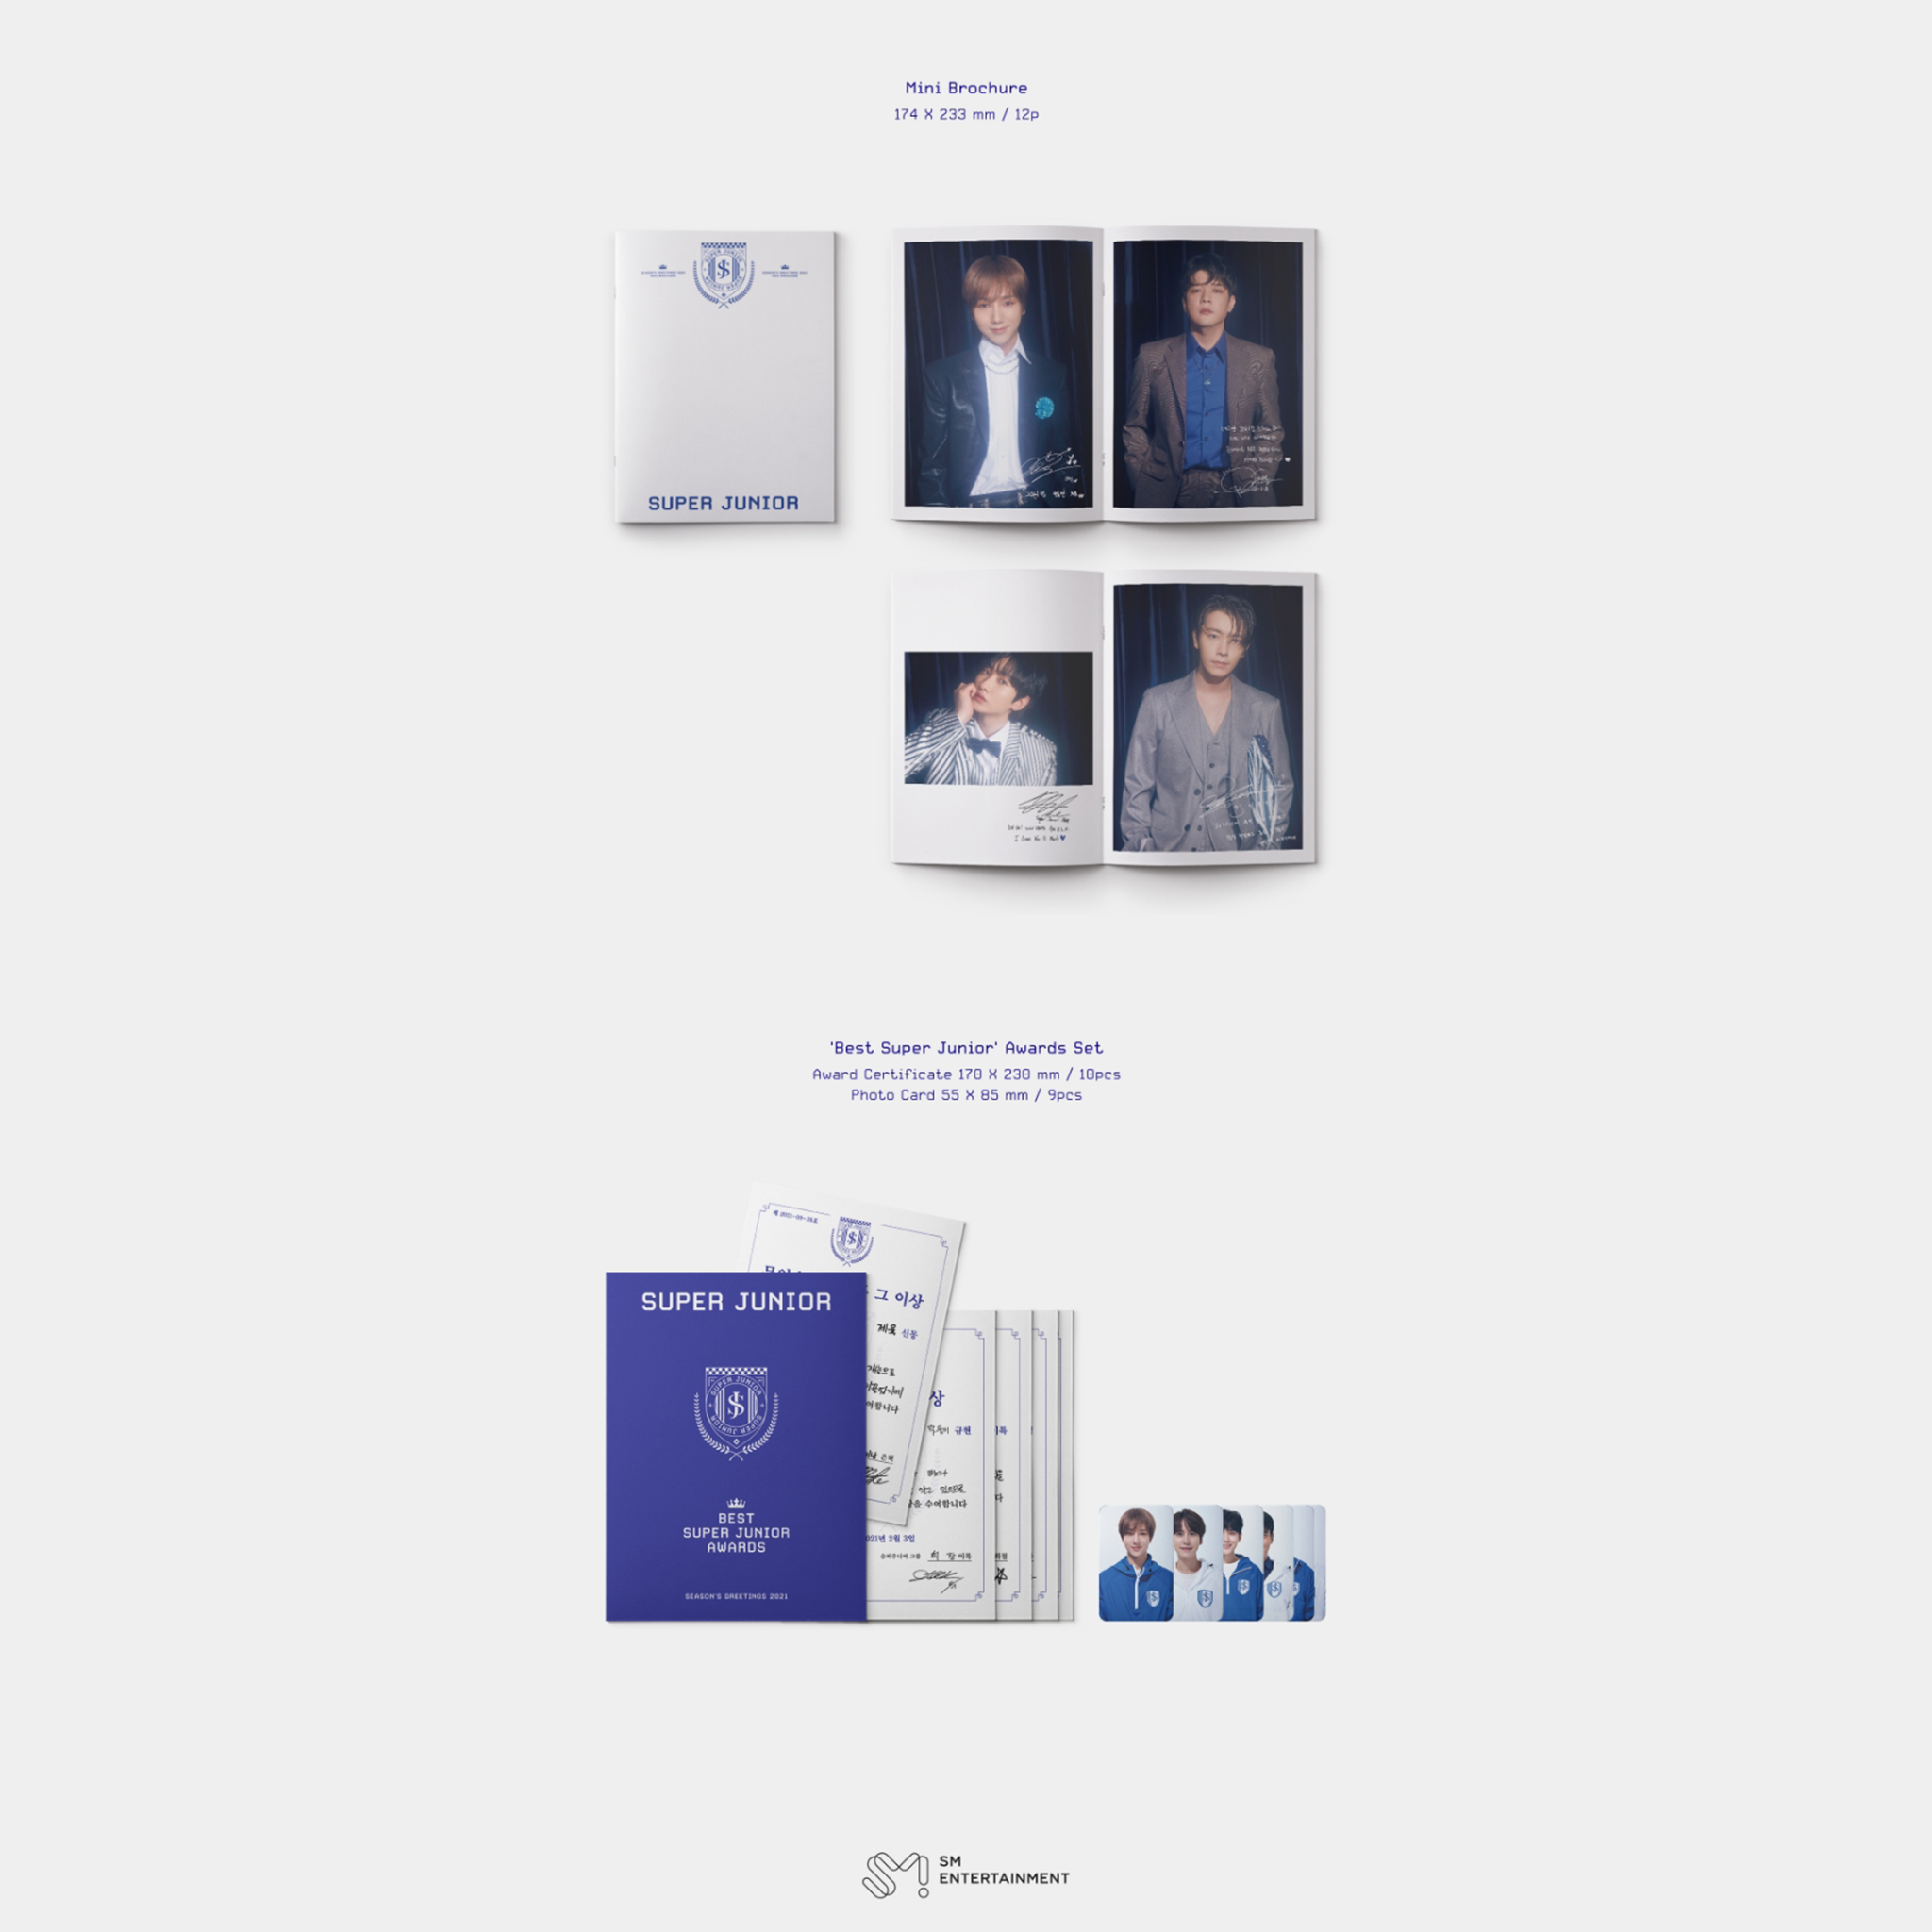 [Special Pre-Order] SMTOWN Artists Season's Greetings 2021 - Super Junior